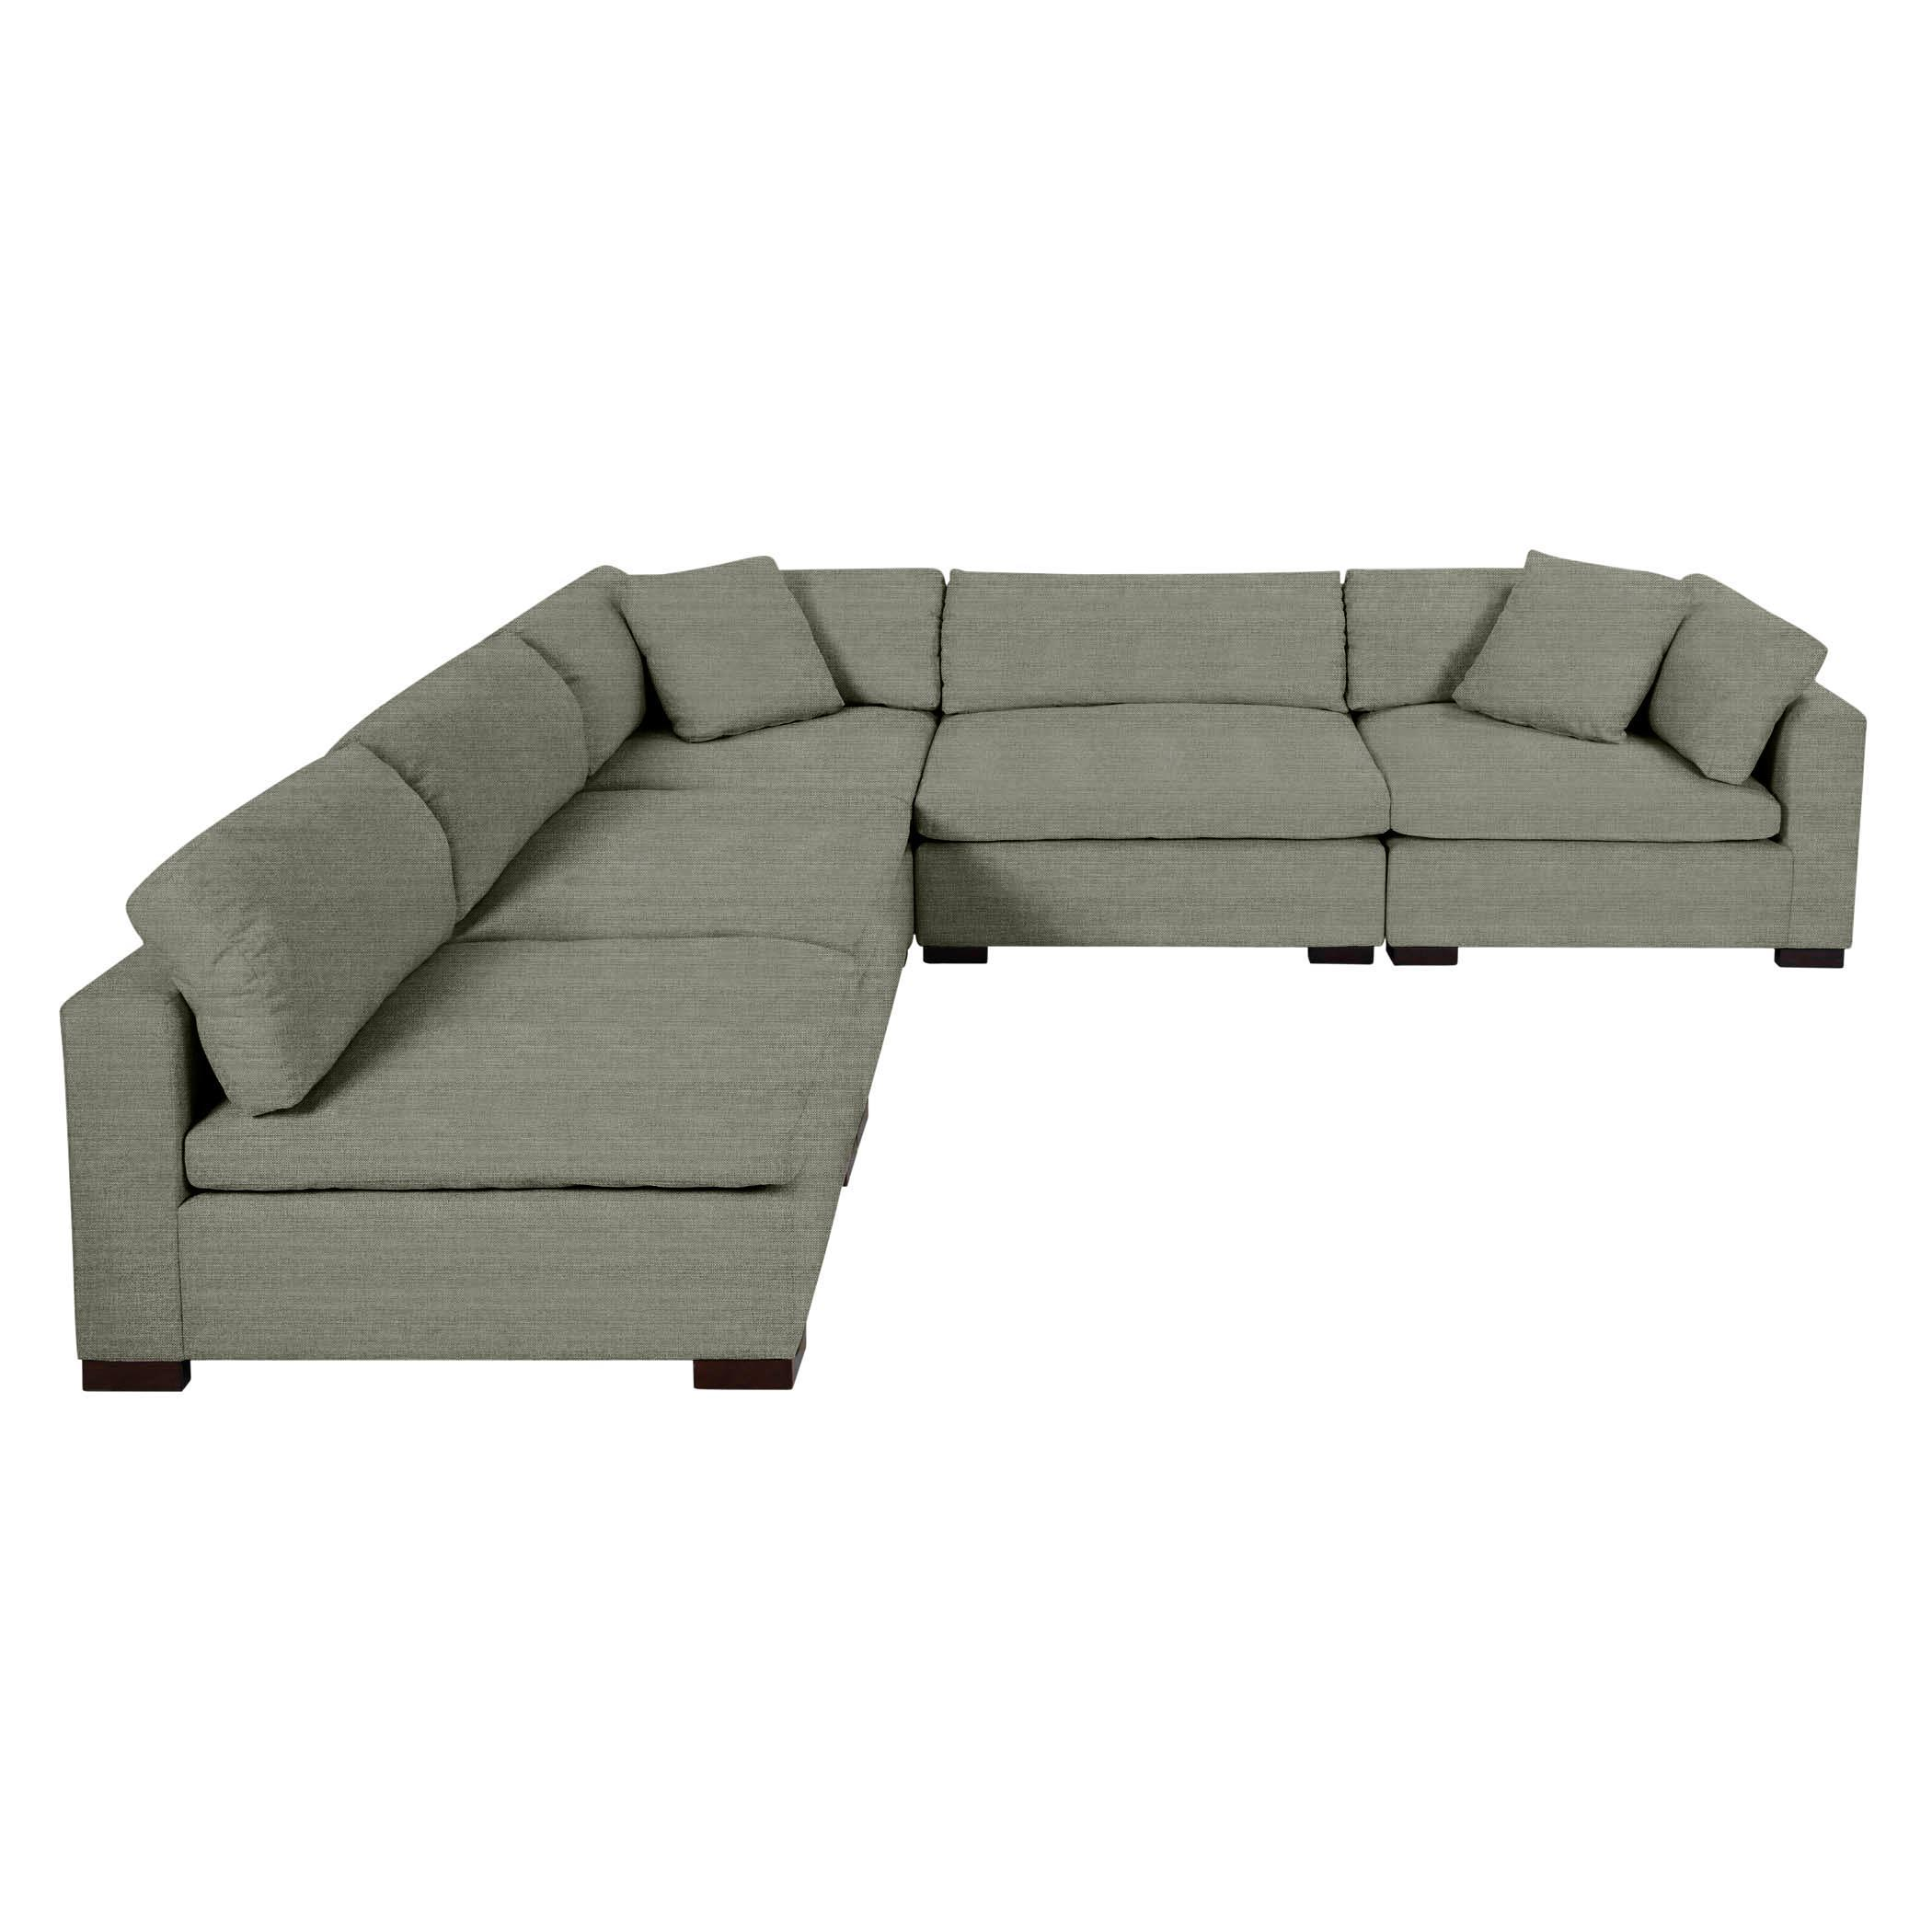 Naples Sectional - Build Your Own